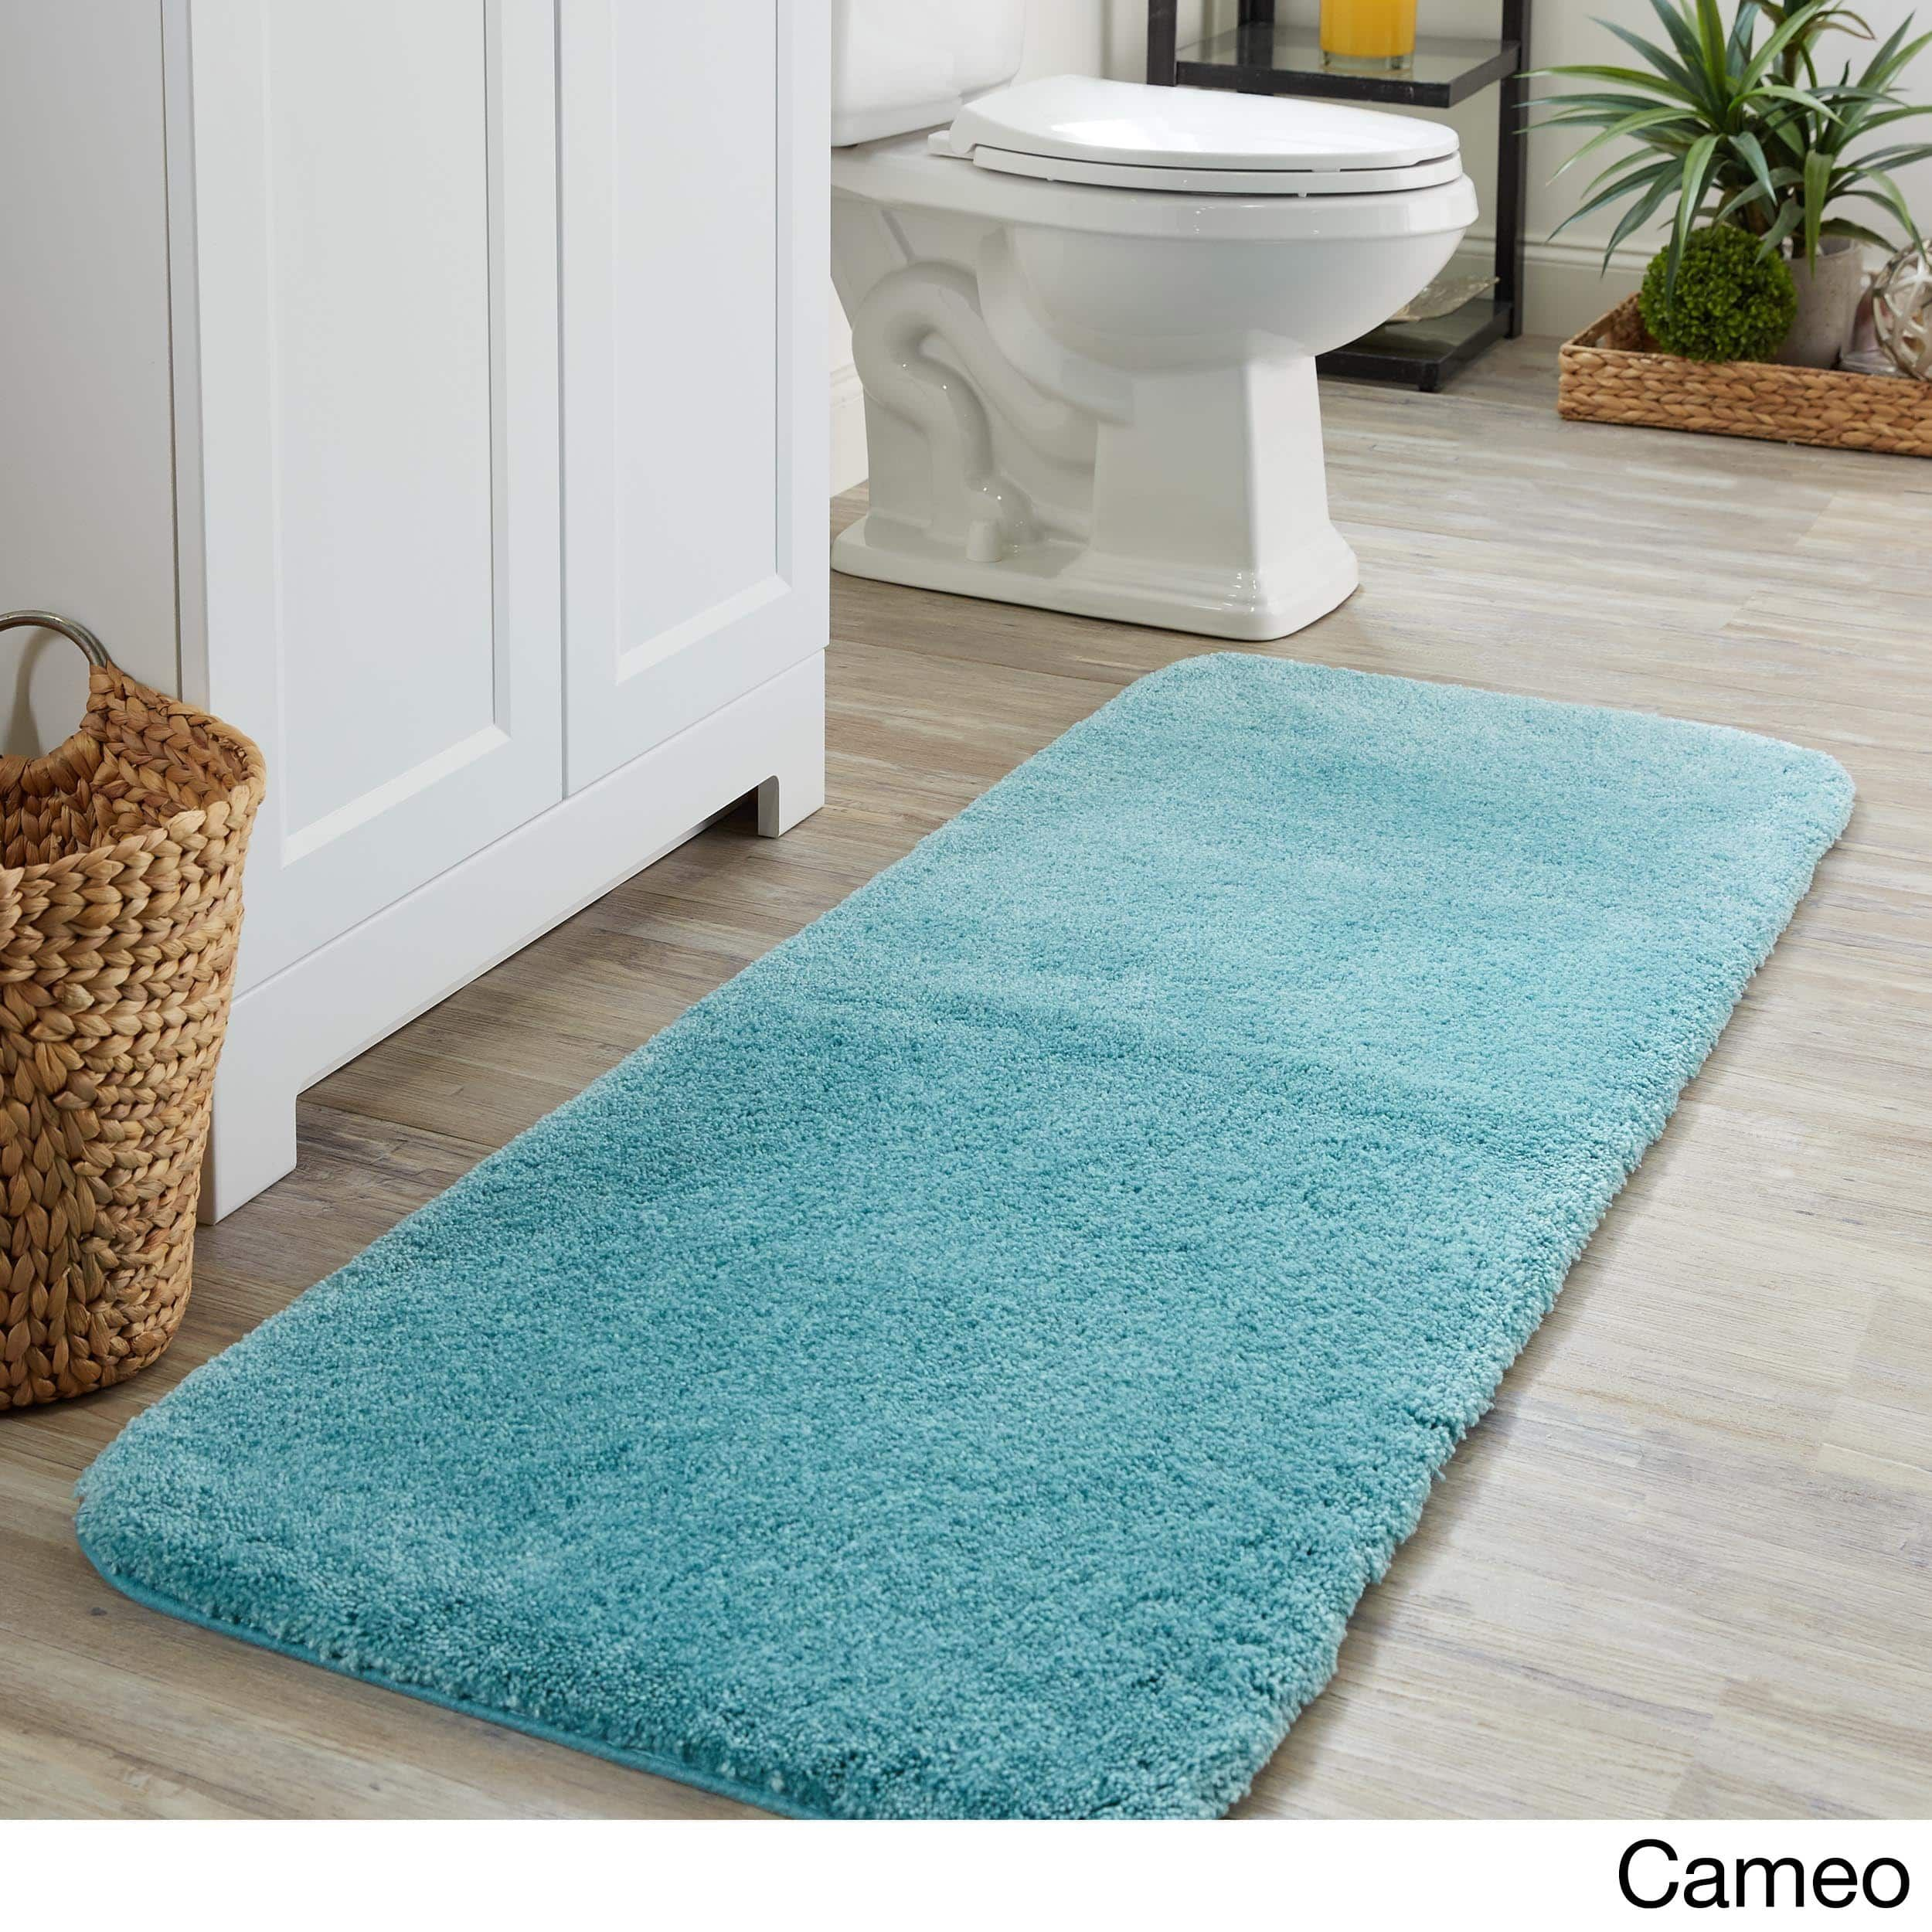 Mohawk Home Spa Bath Rug (2\'x5\') (Cameo), Blue wash | Spa baths ...